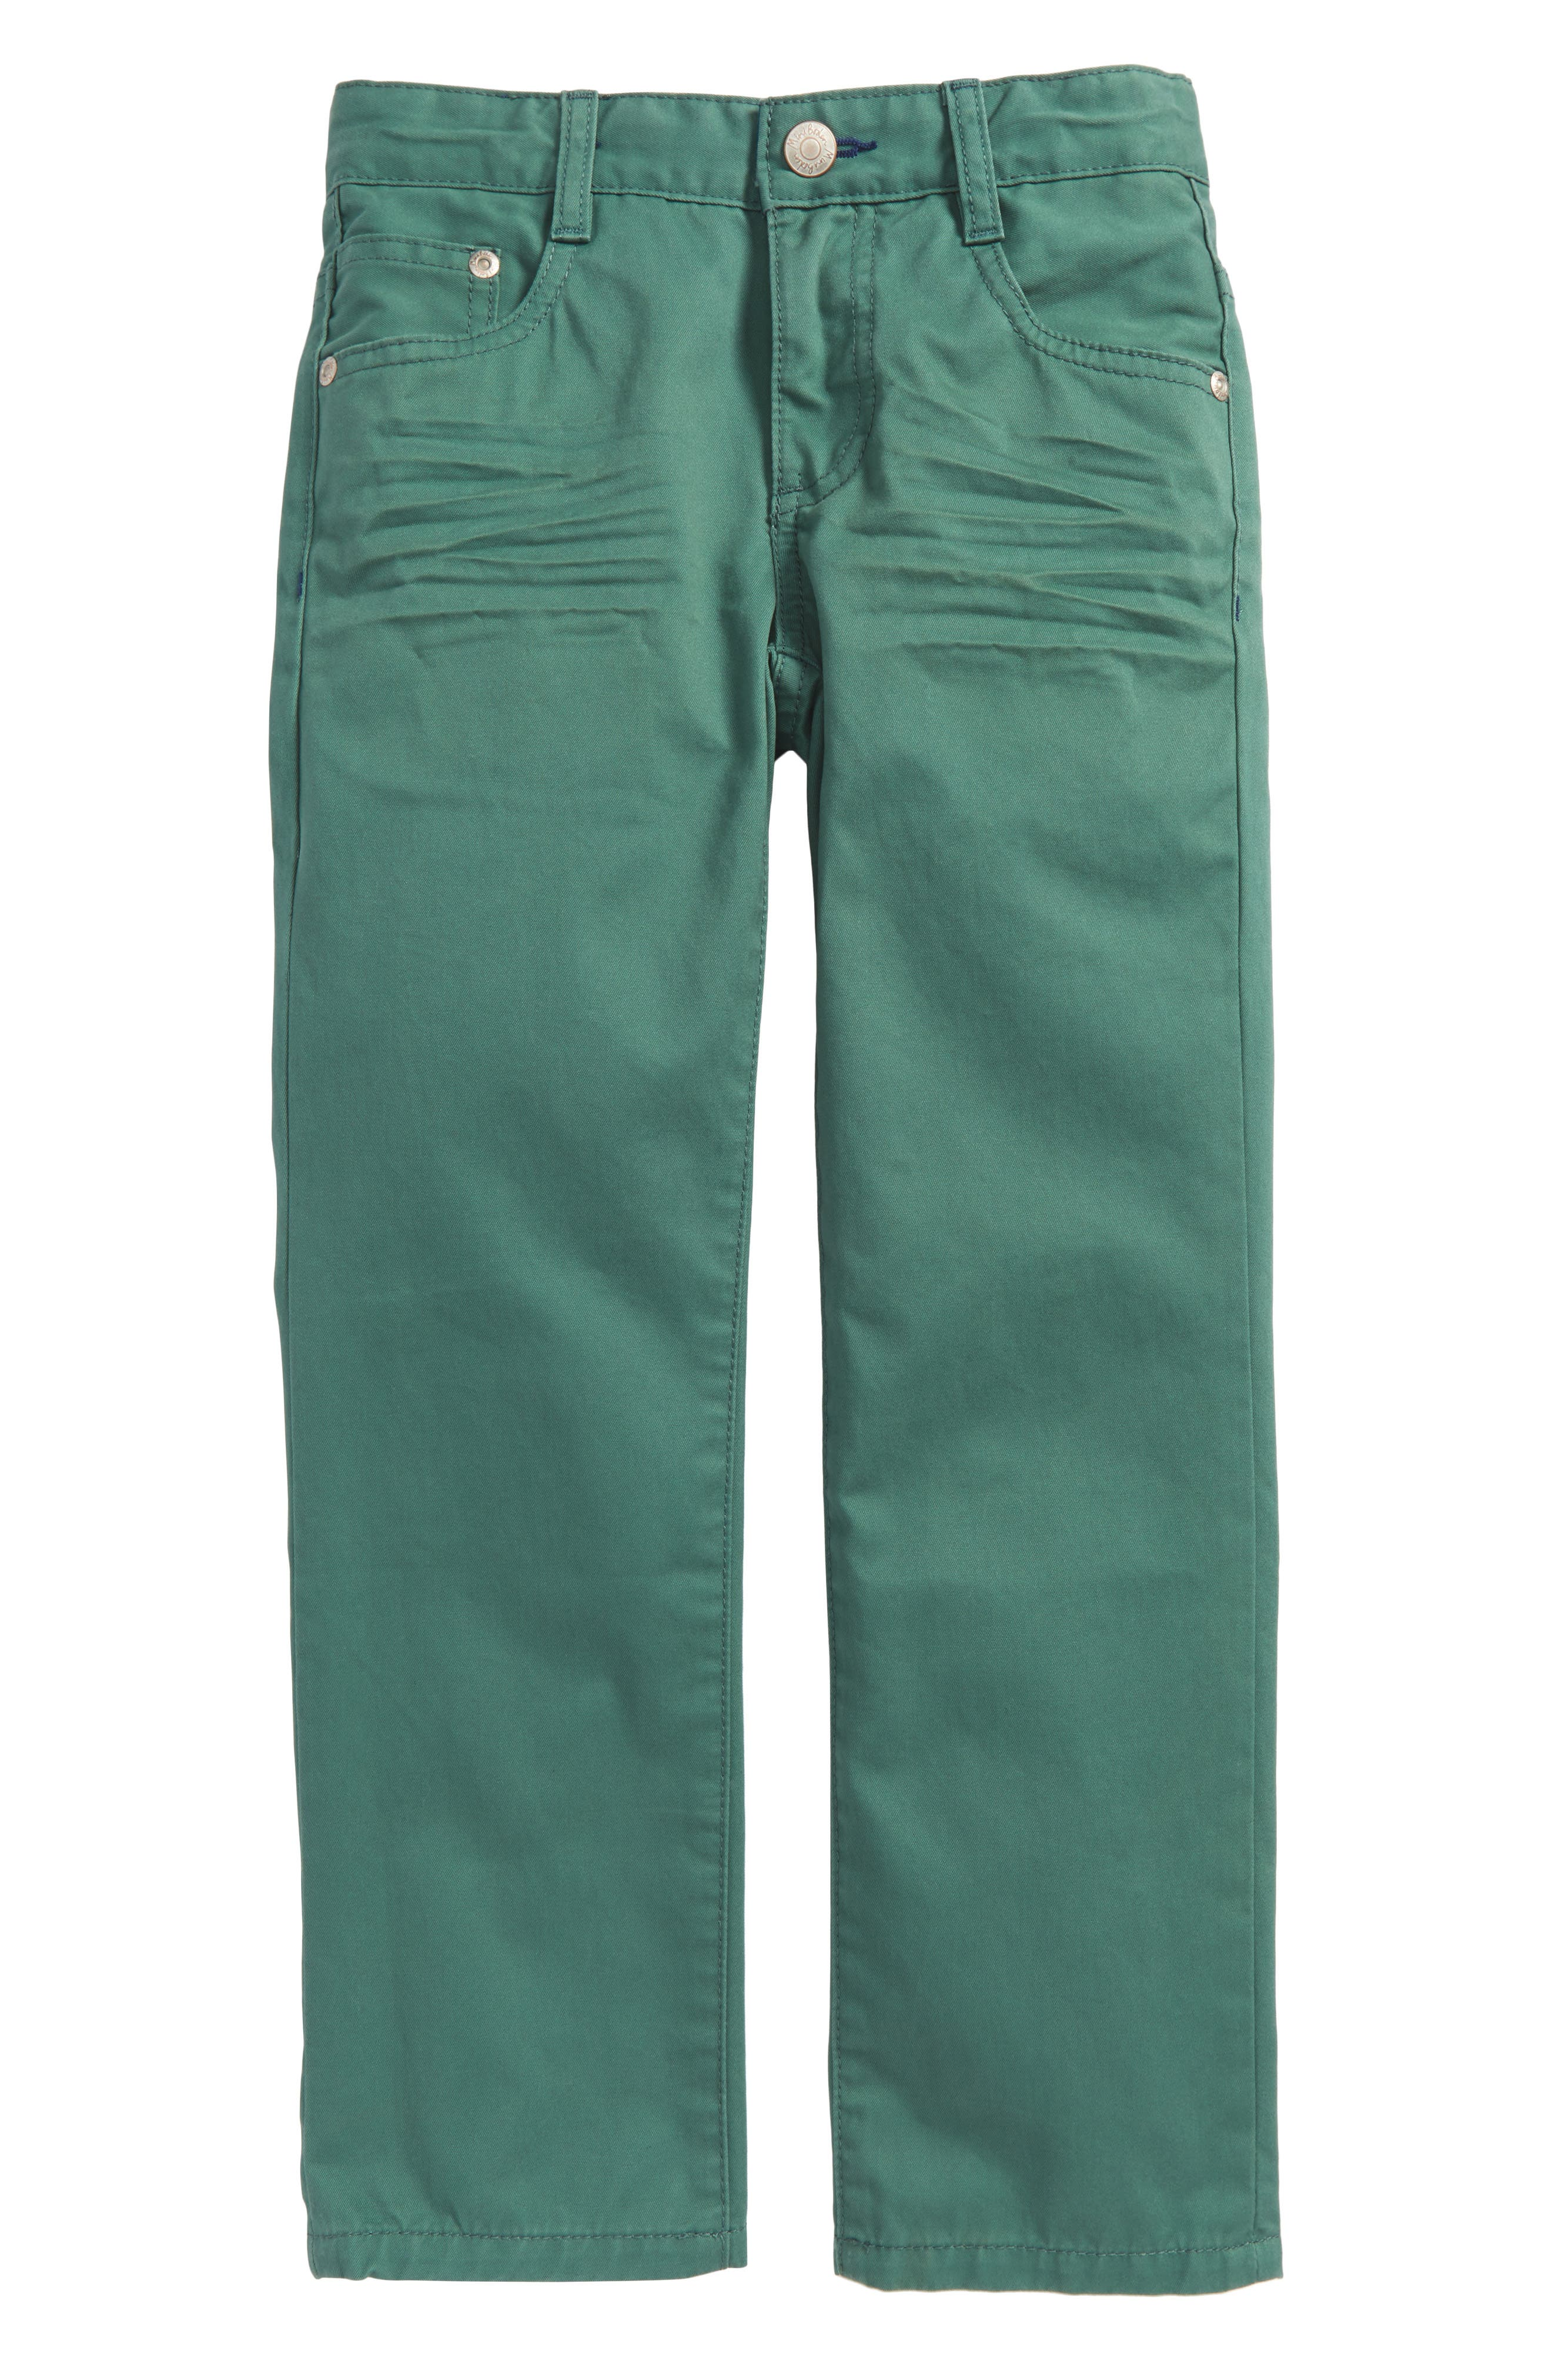 Slim Jeans,                         Main,                         color, Rosemary Green